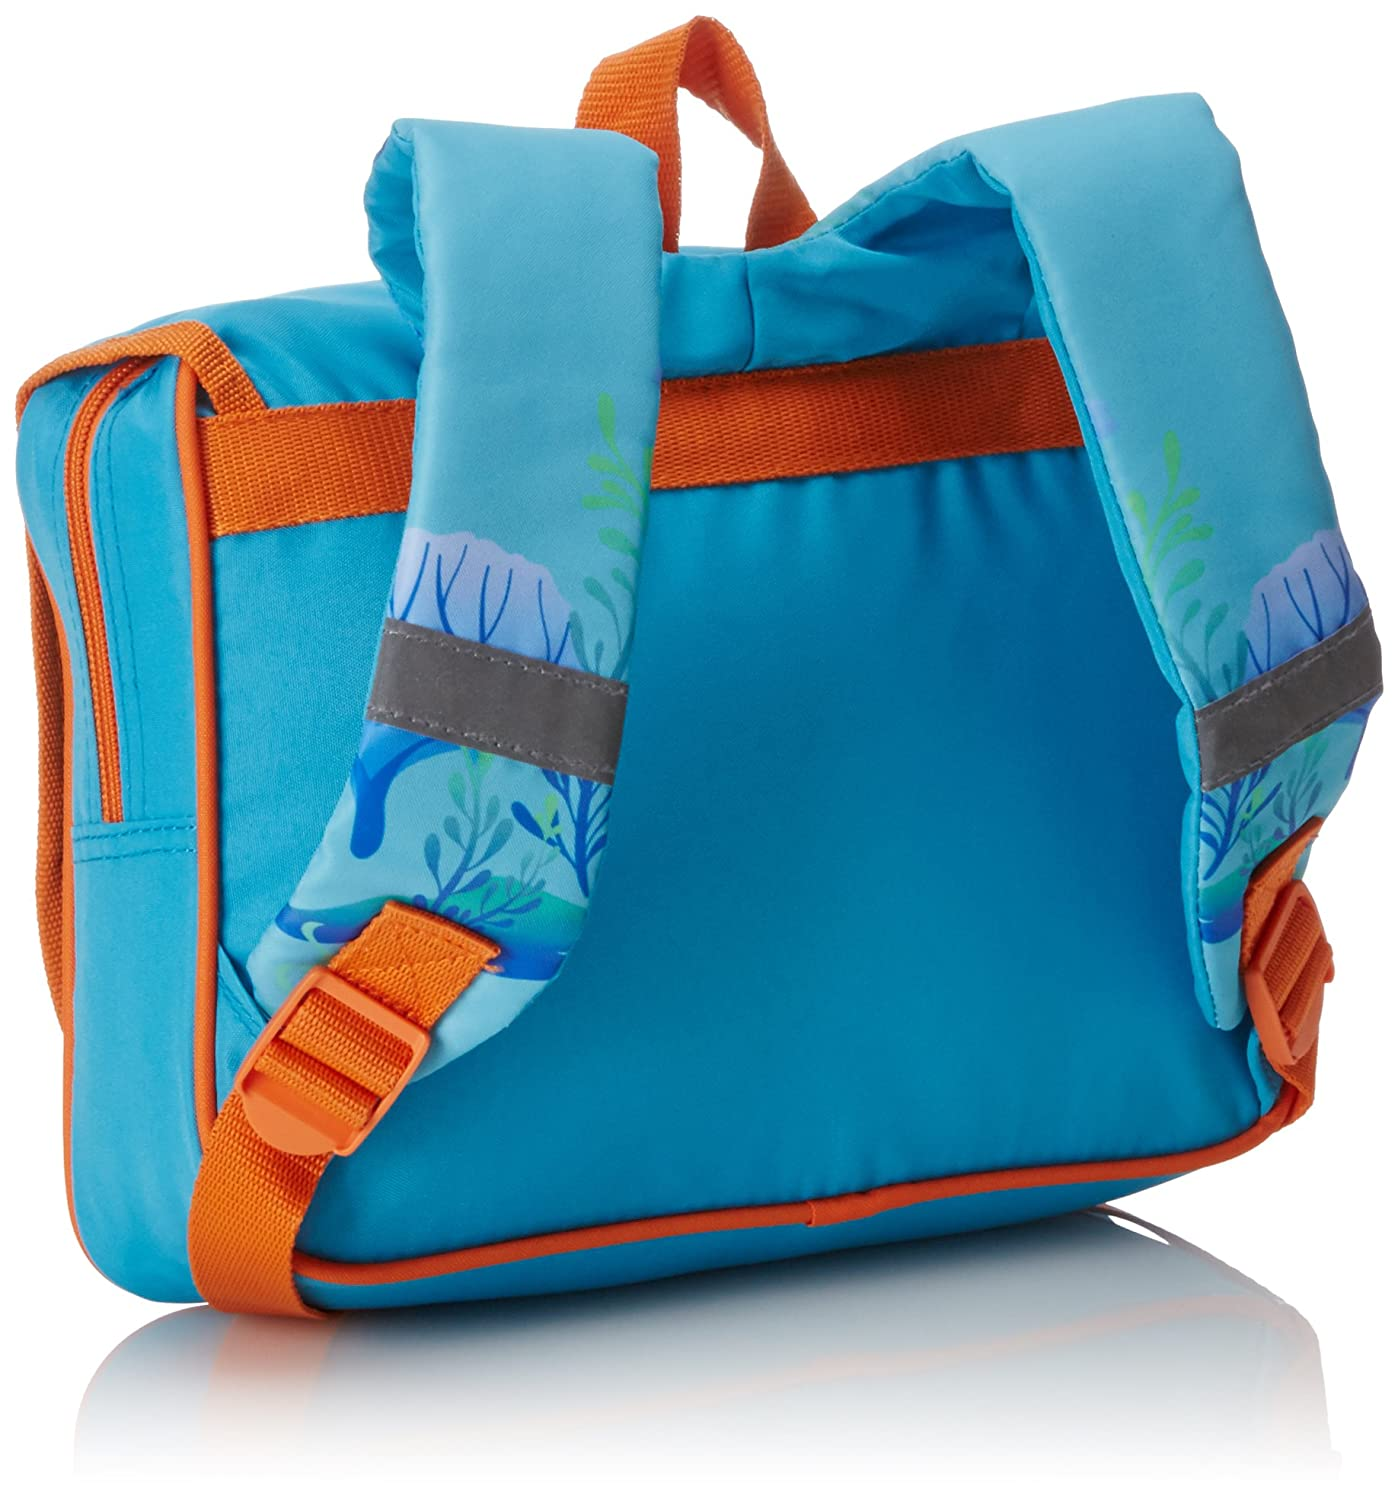 Disney American Tourister New Wonder Cartable S Sac à Dos Enfant, 28 cm, 5,5 L, Dory-Nemo Fintastic